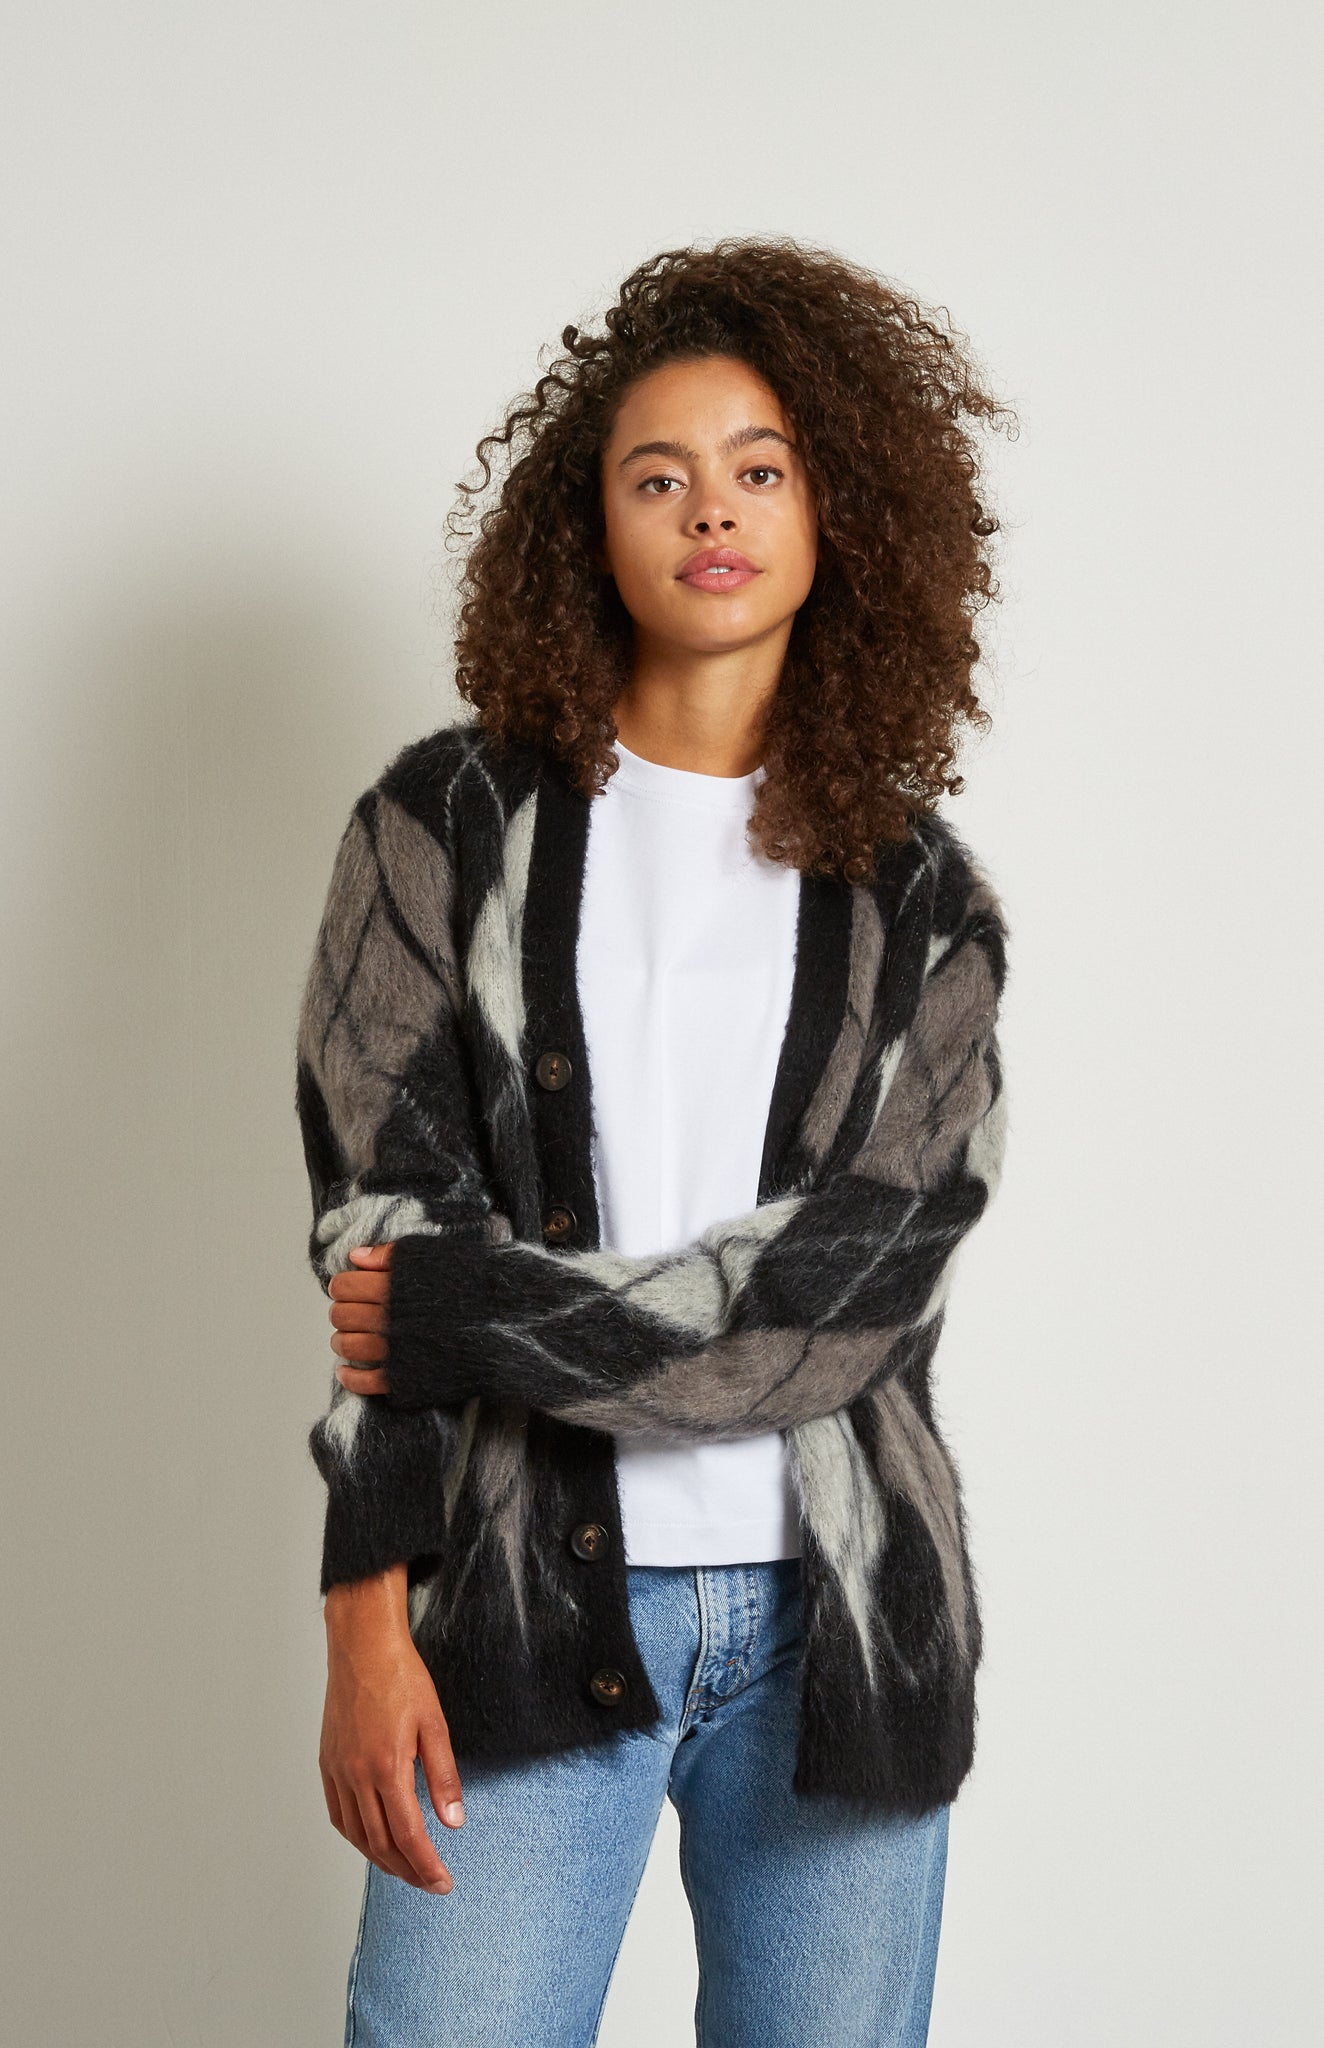 Pringle Reissued Unisex Monochrome Argyle Cardigan on female model